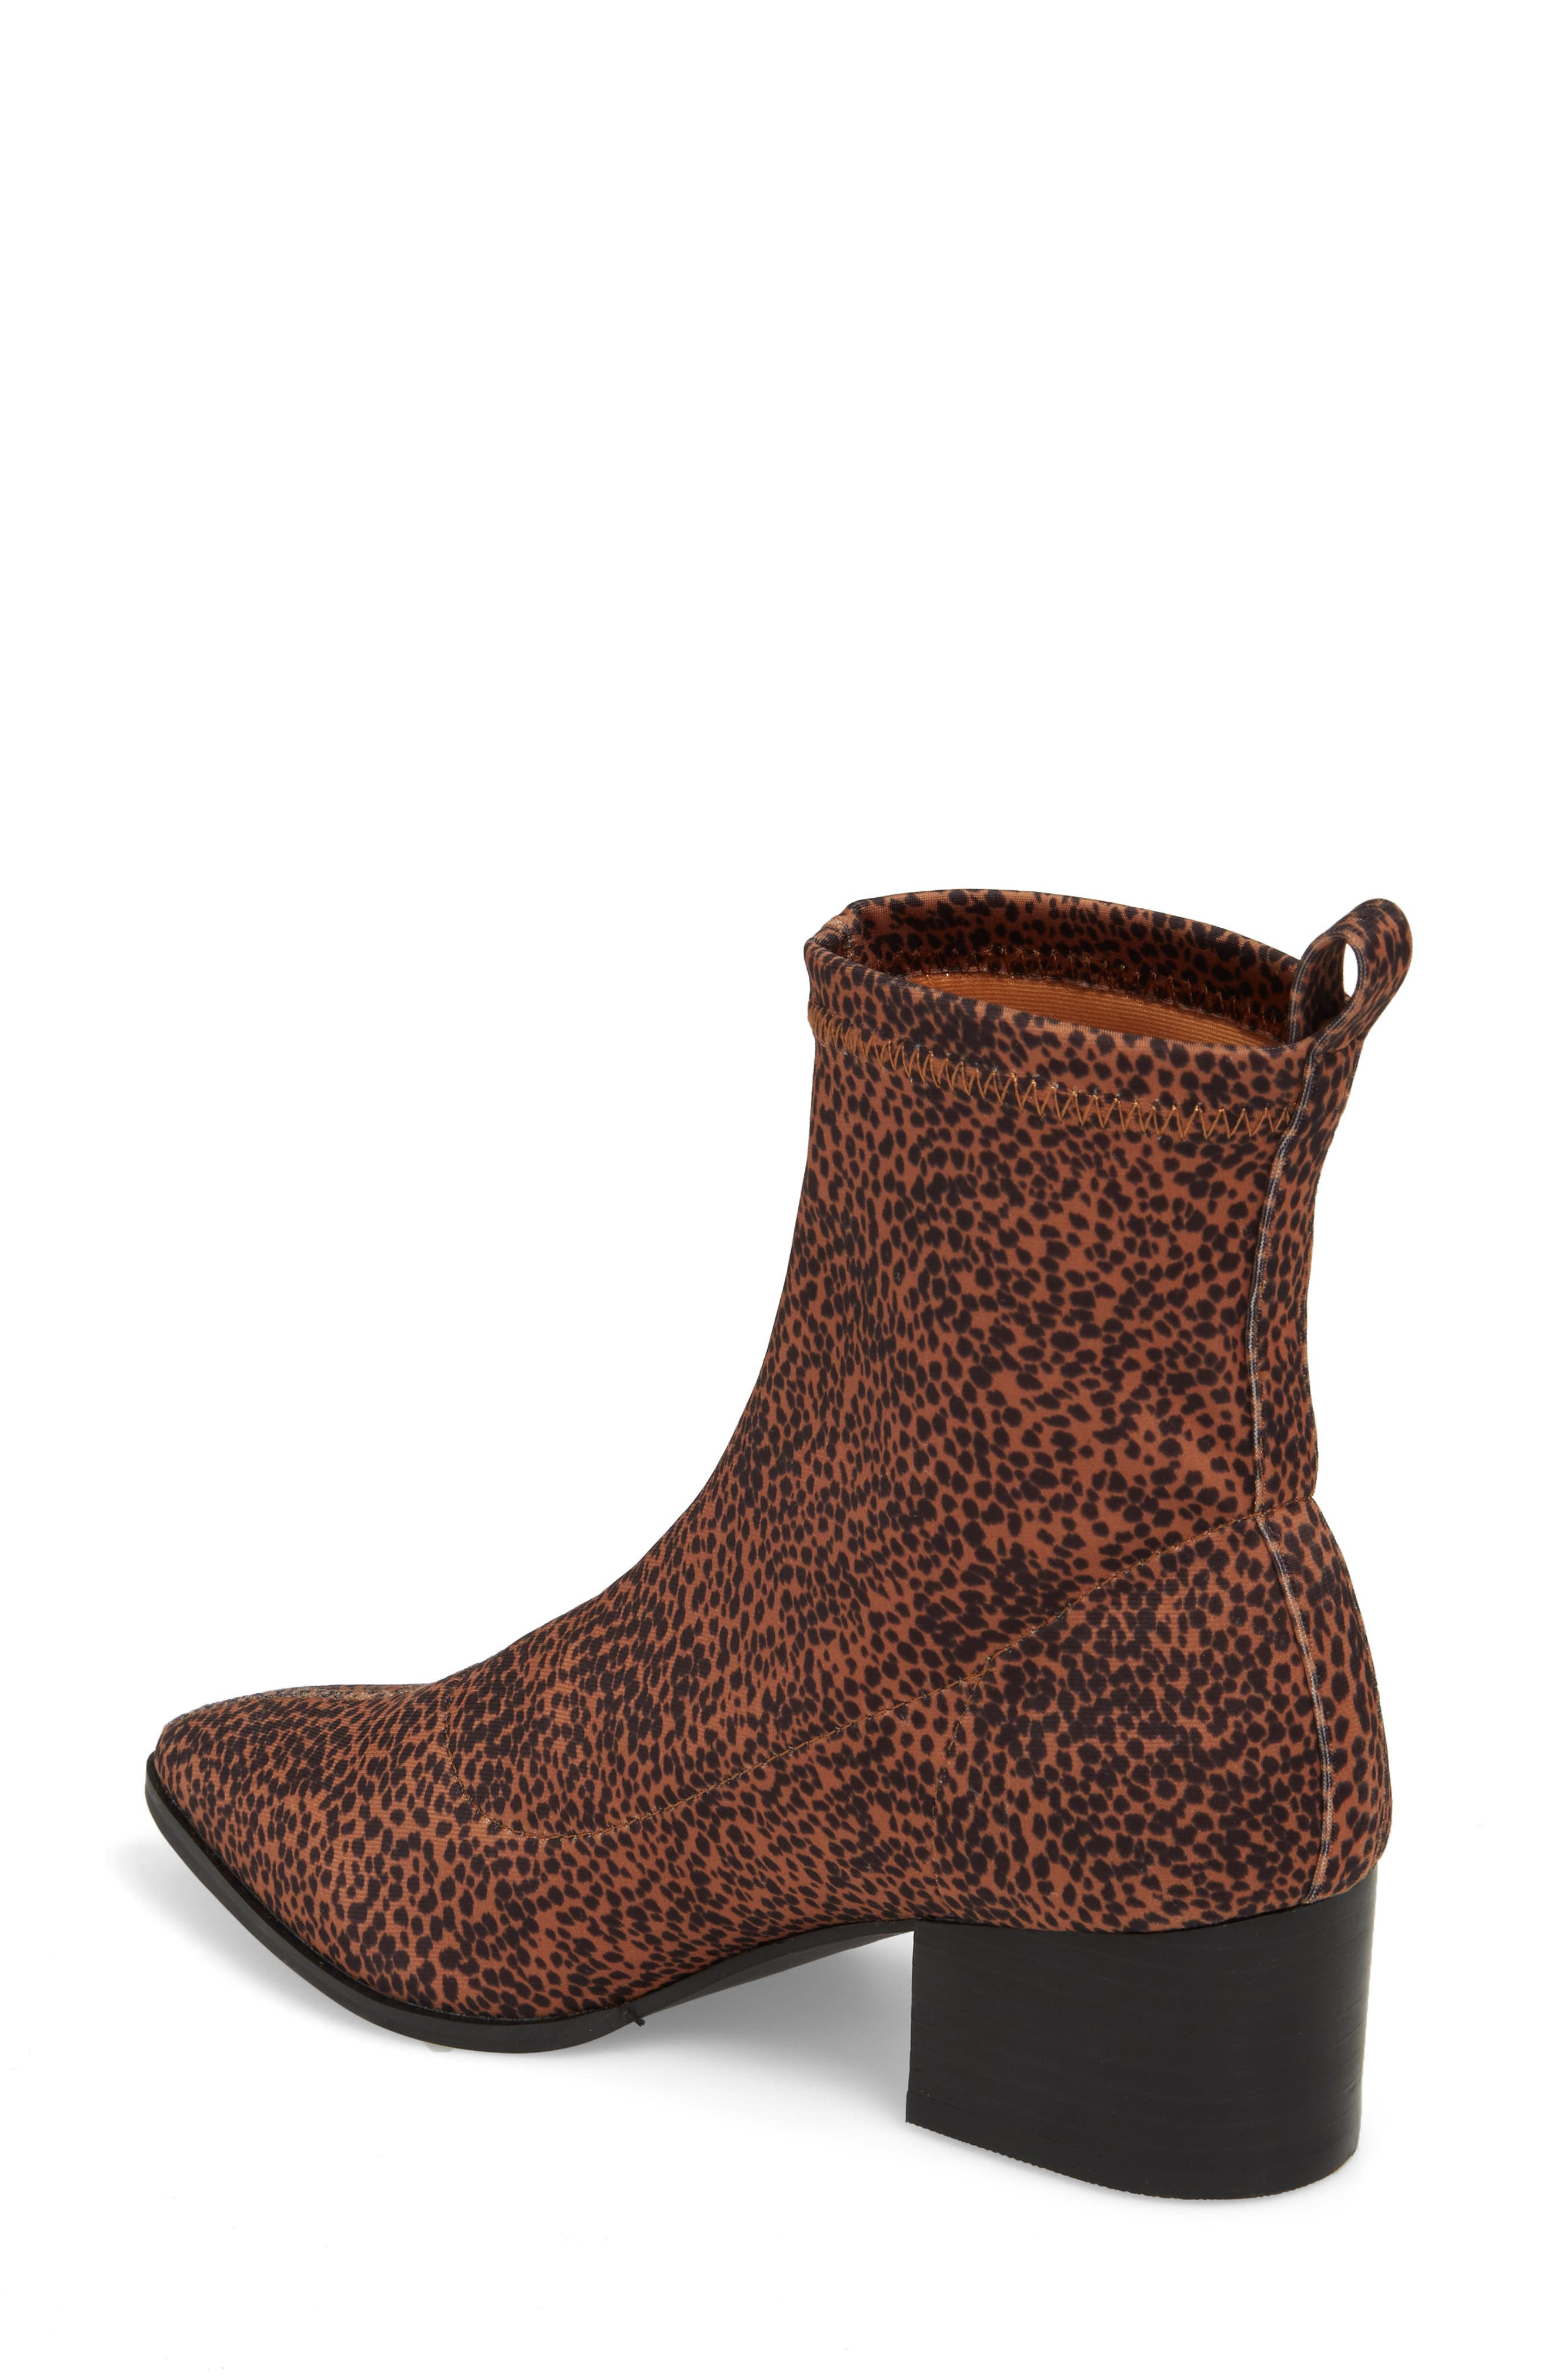 Amuse Society x Matisse Liliana Sock Bootie,                             Alternate thumbnail 2, color,                             Brown Stretch Fabric